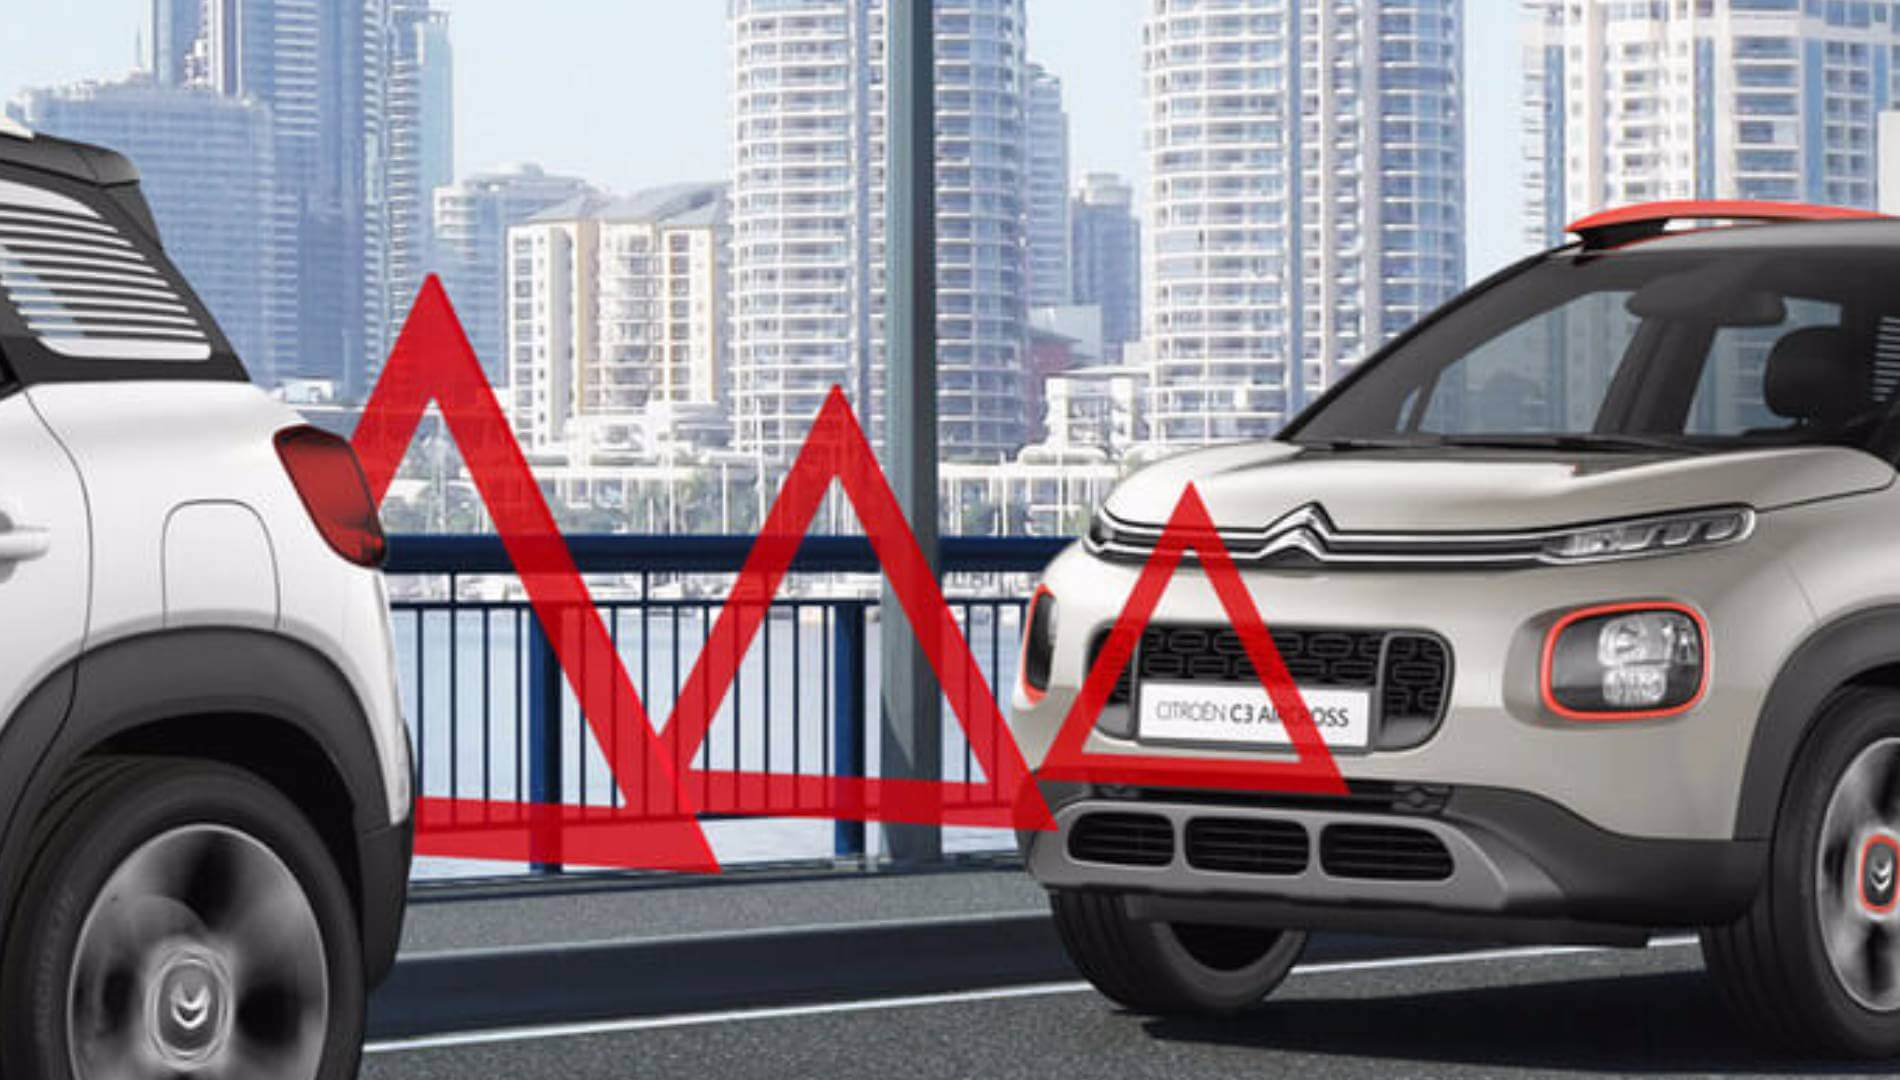 C3 Aircross Active Safety Braking